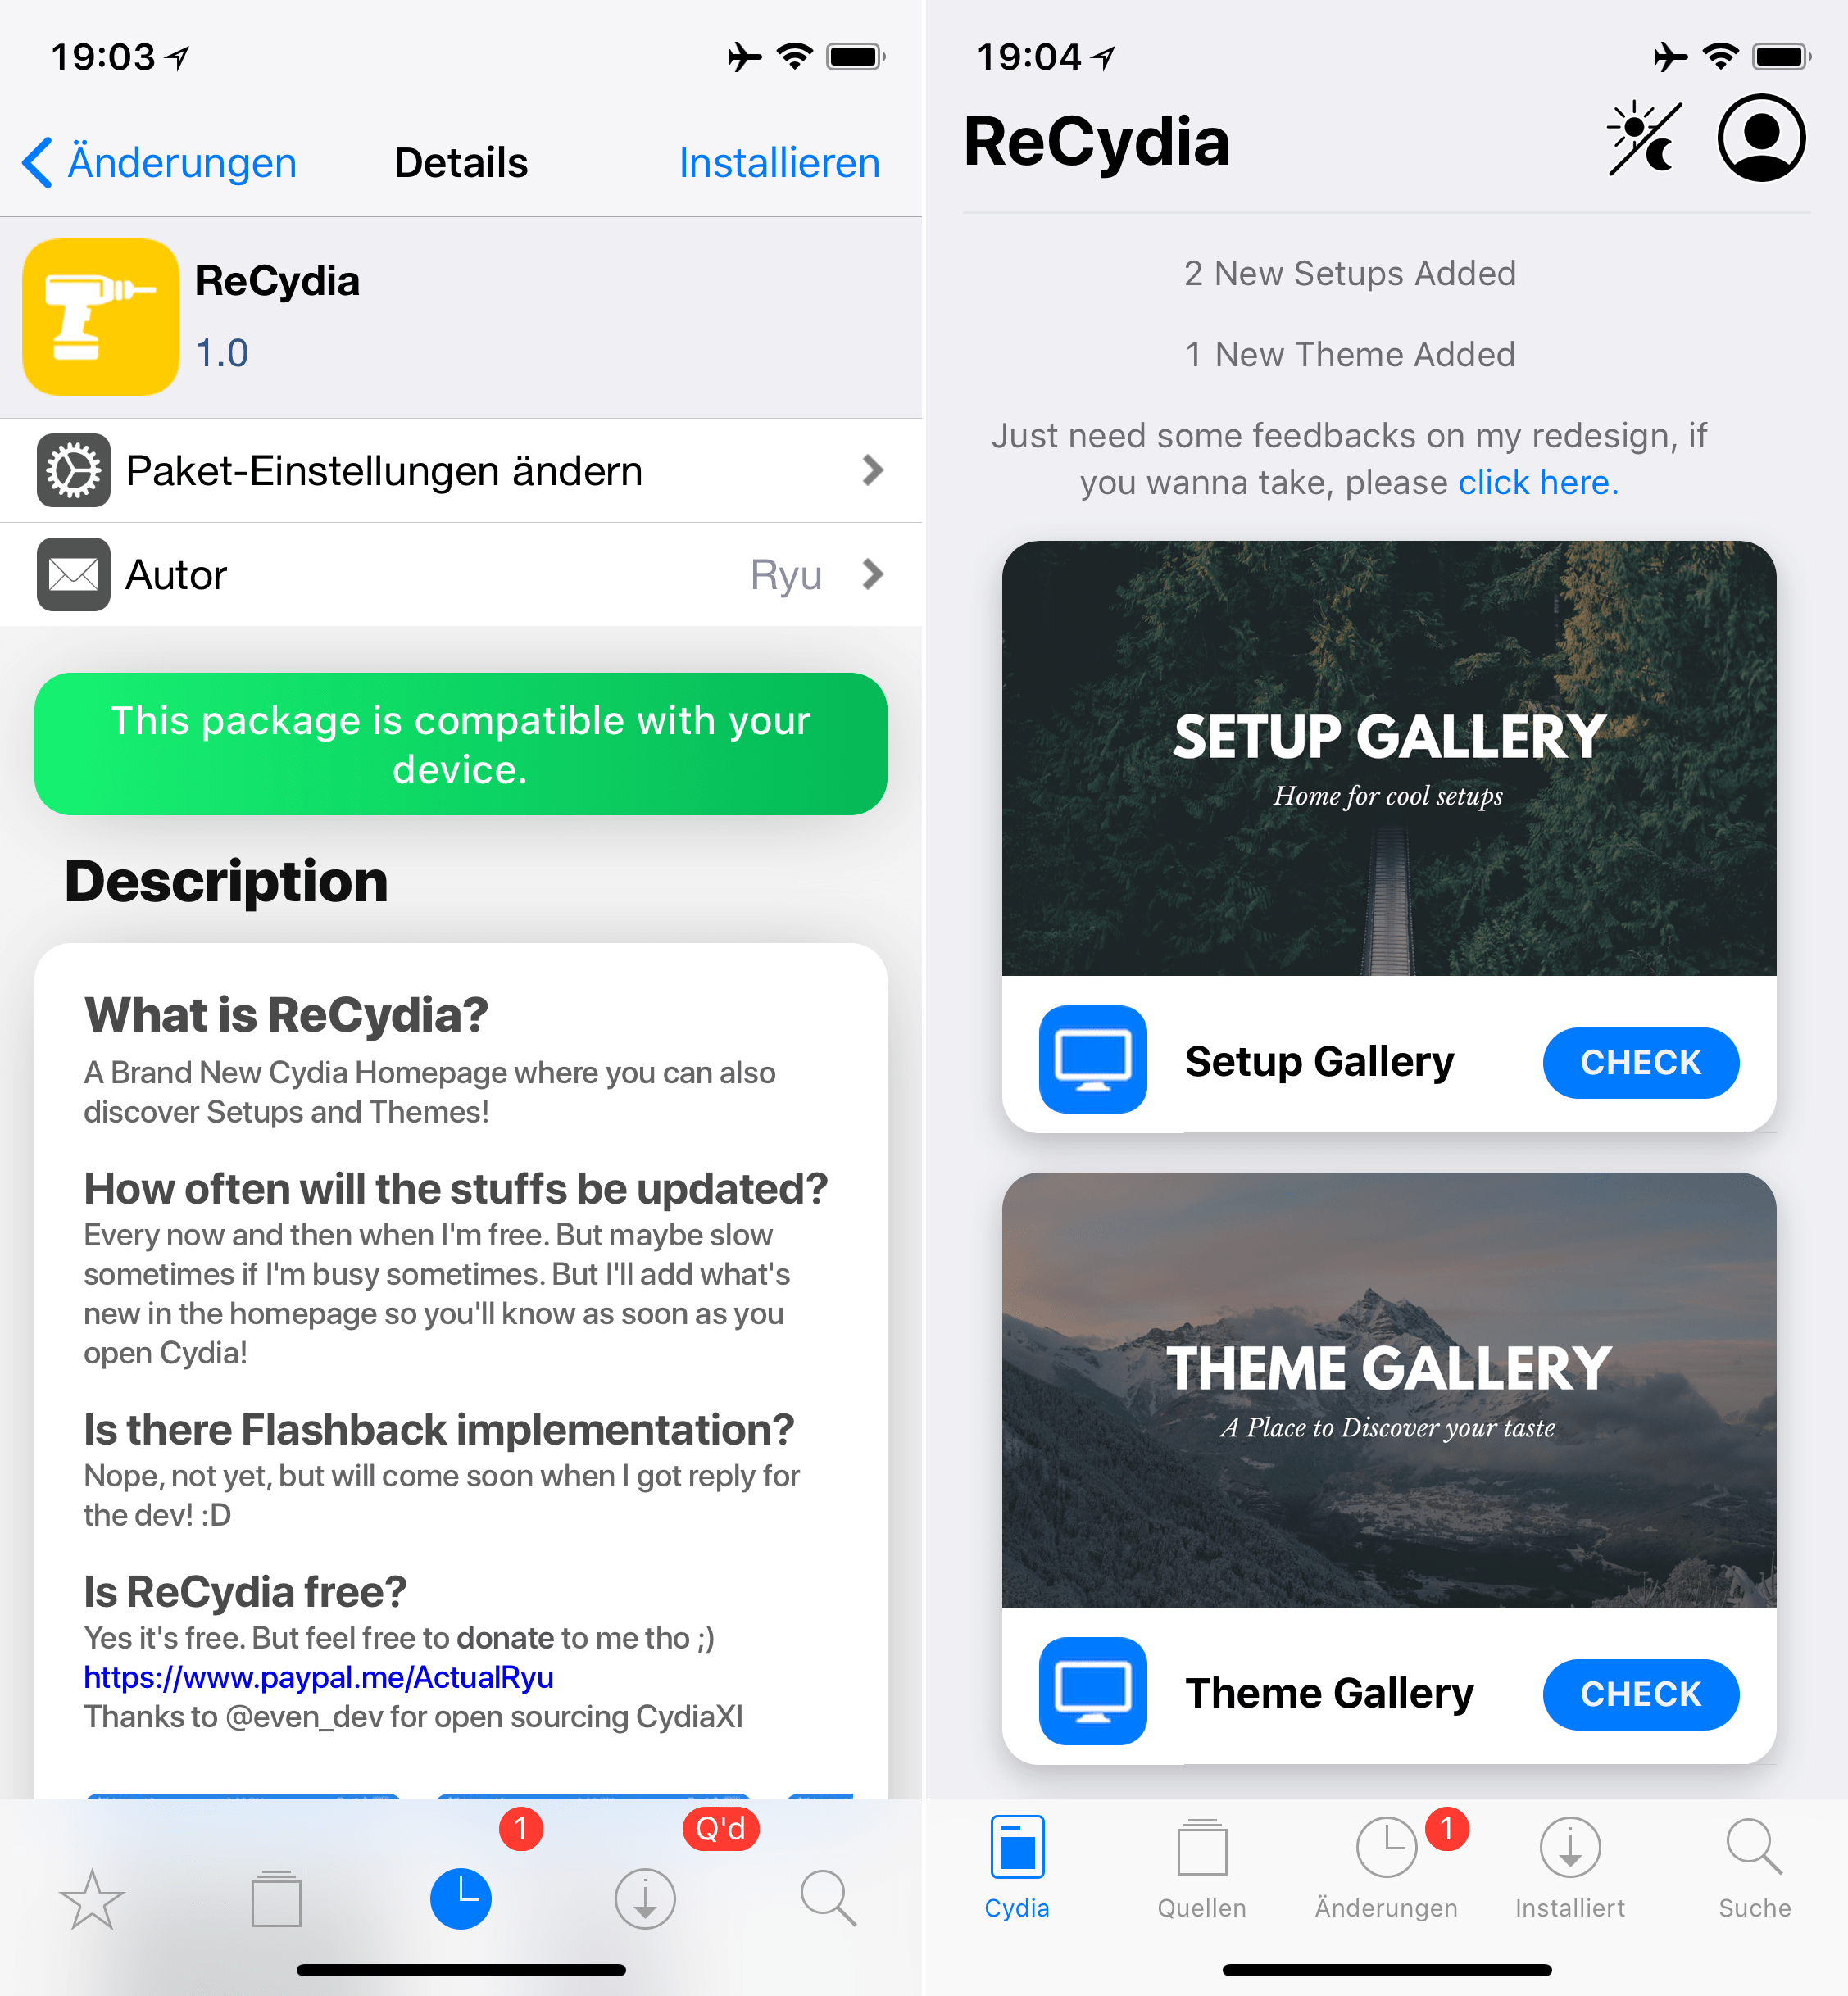 New front page for Cydia, ReCydia, Top, Cydia, Tweak, Sileo, Hack4Life, Fabian Geissler, iOS 11, Download, Hilfe, Support, Anleitung